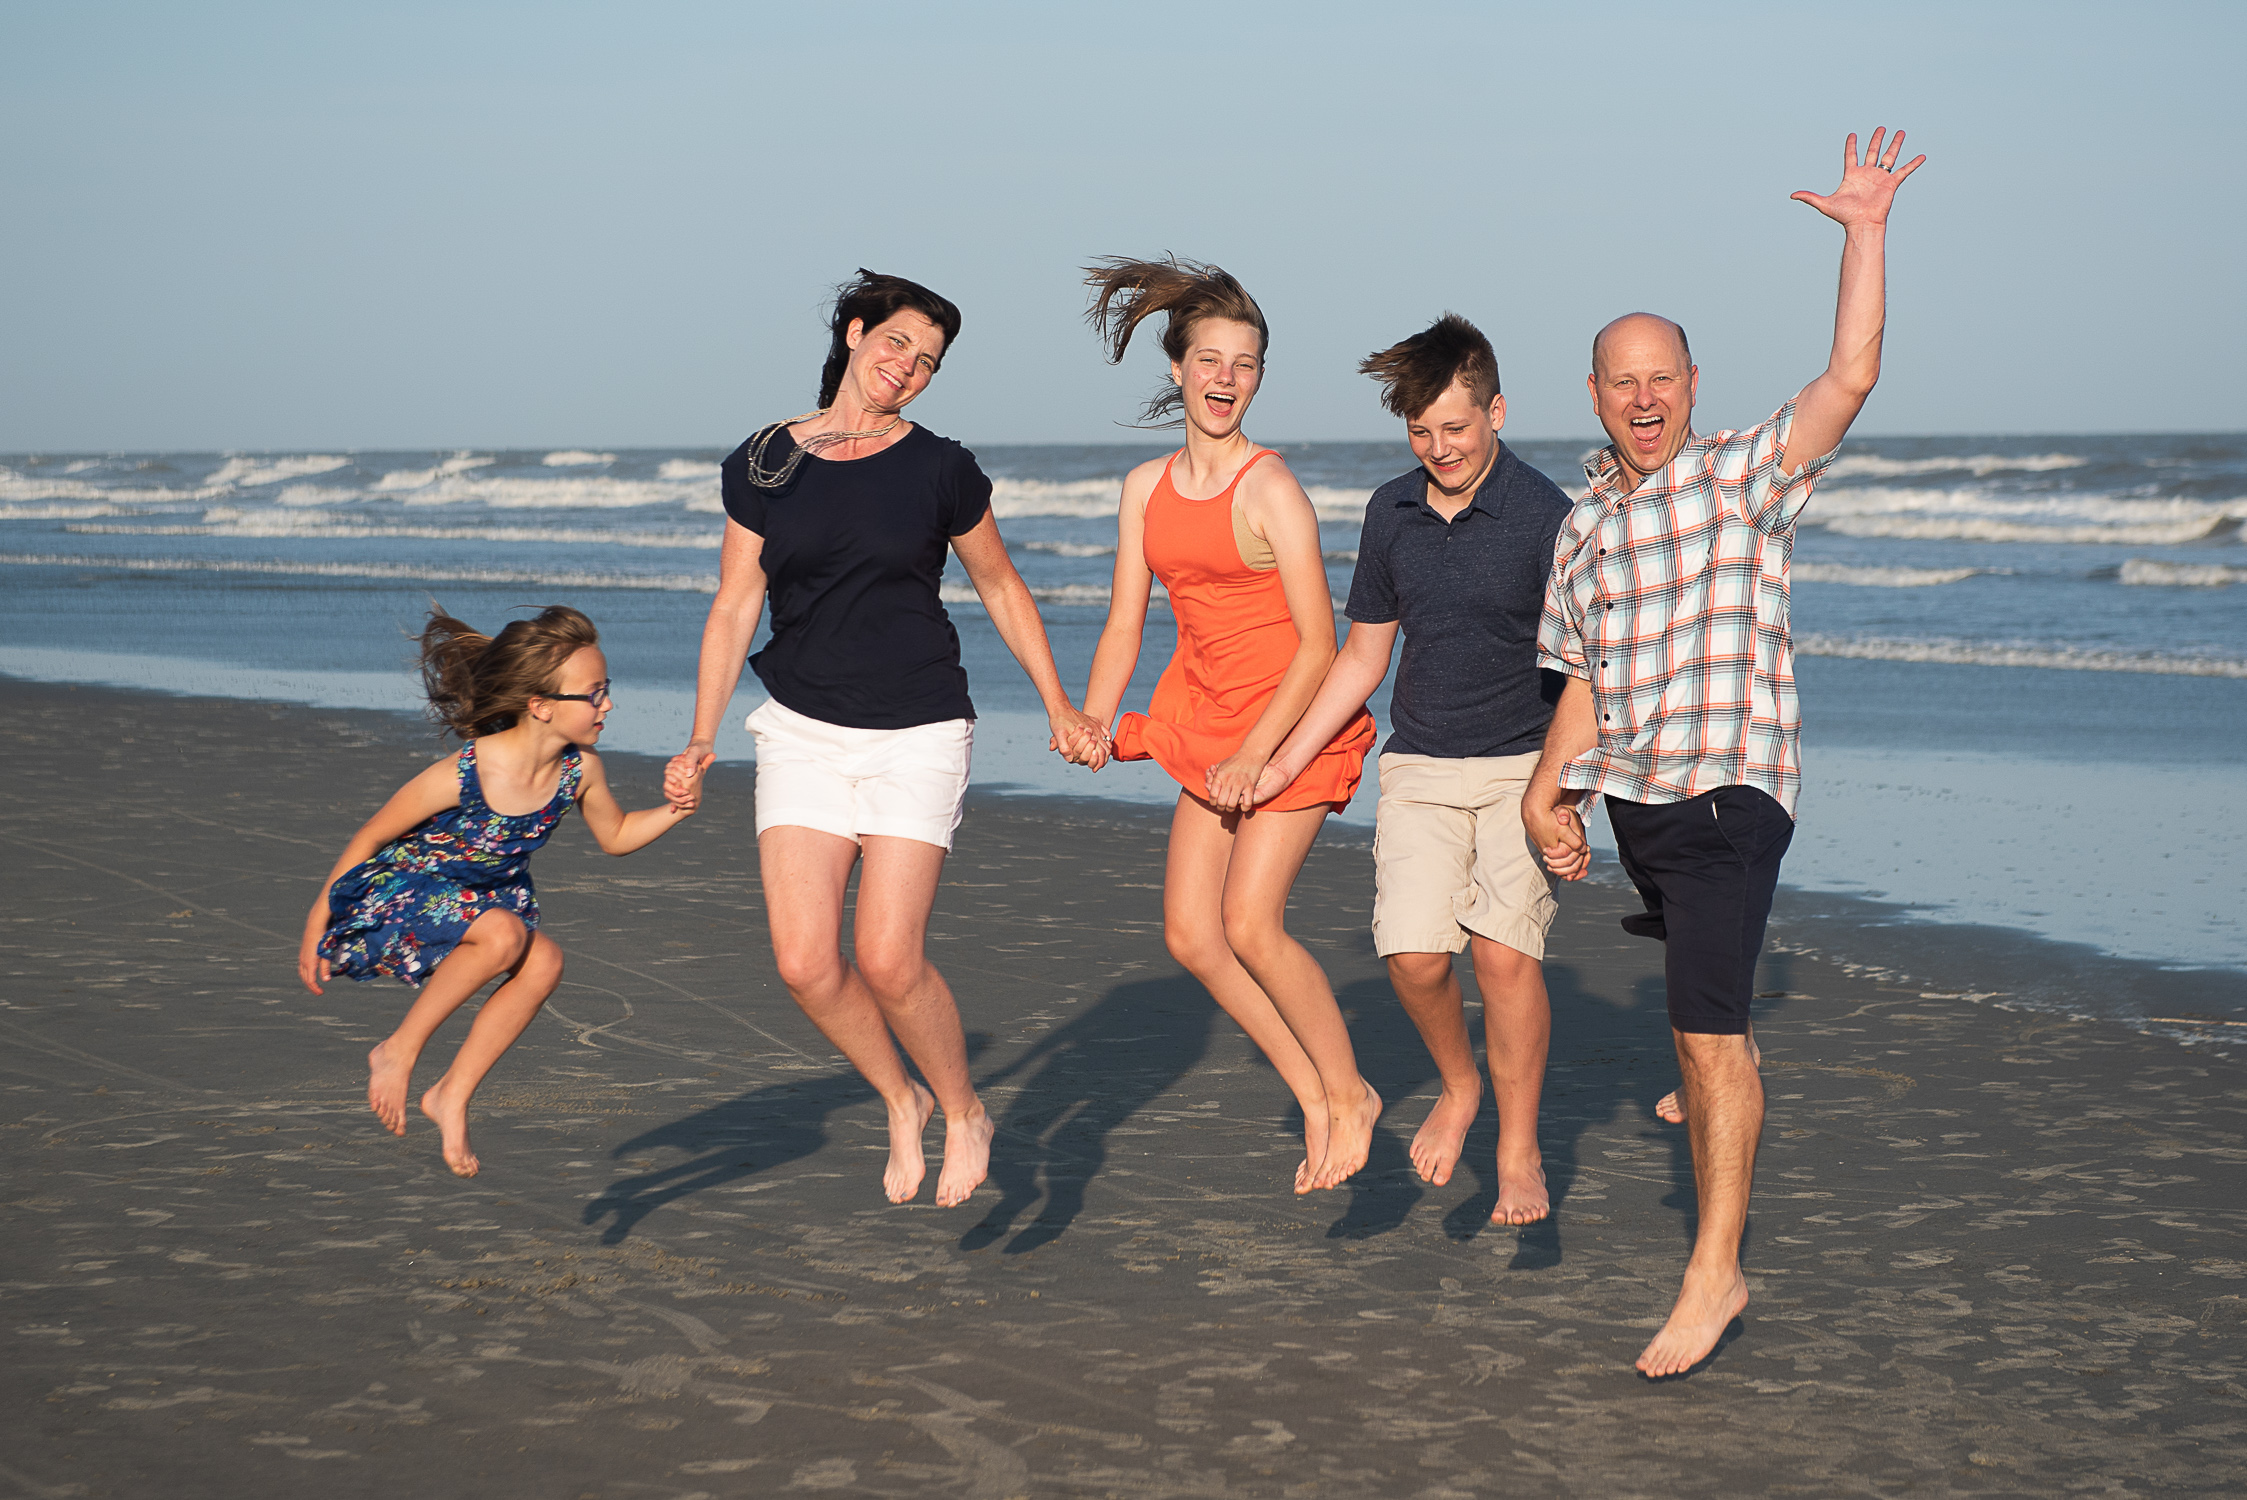 Kiawah Island Family Portrait by Reese Moore Photography